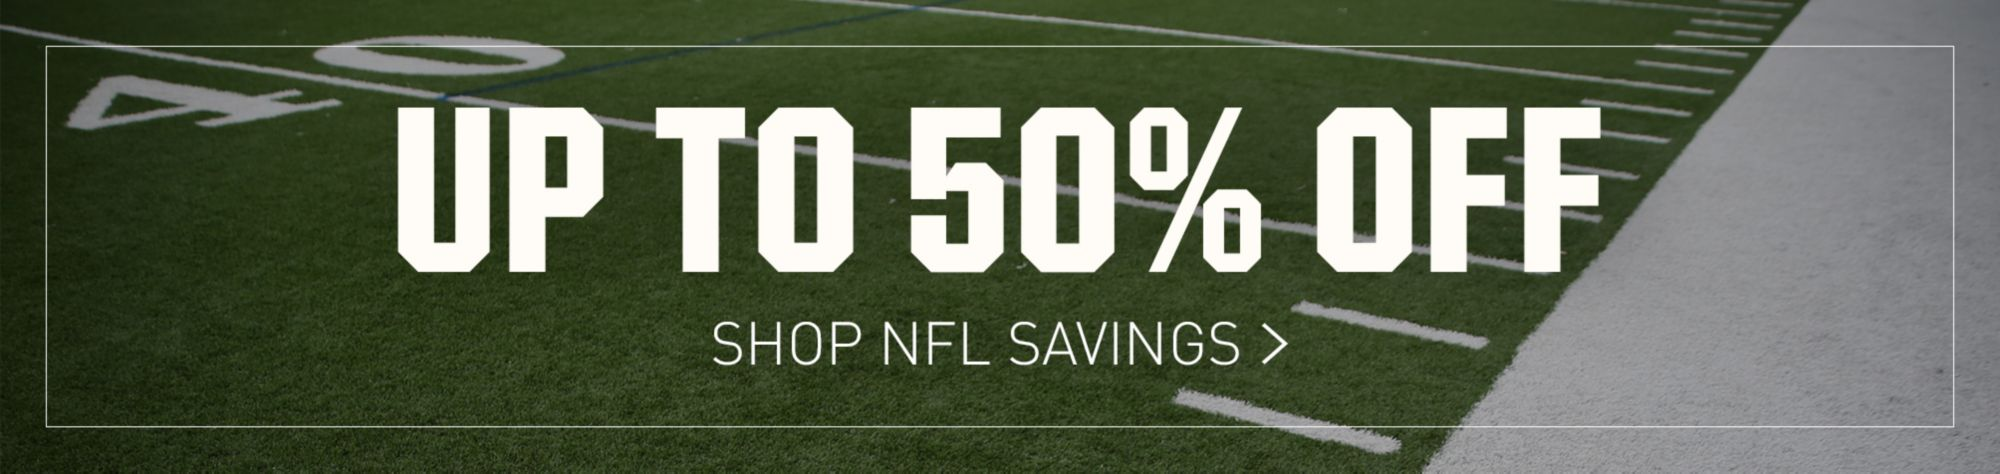 Shop NFL Savings - Up to 50% Off